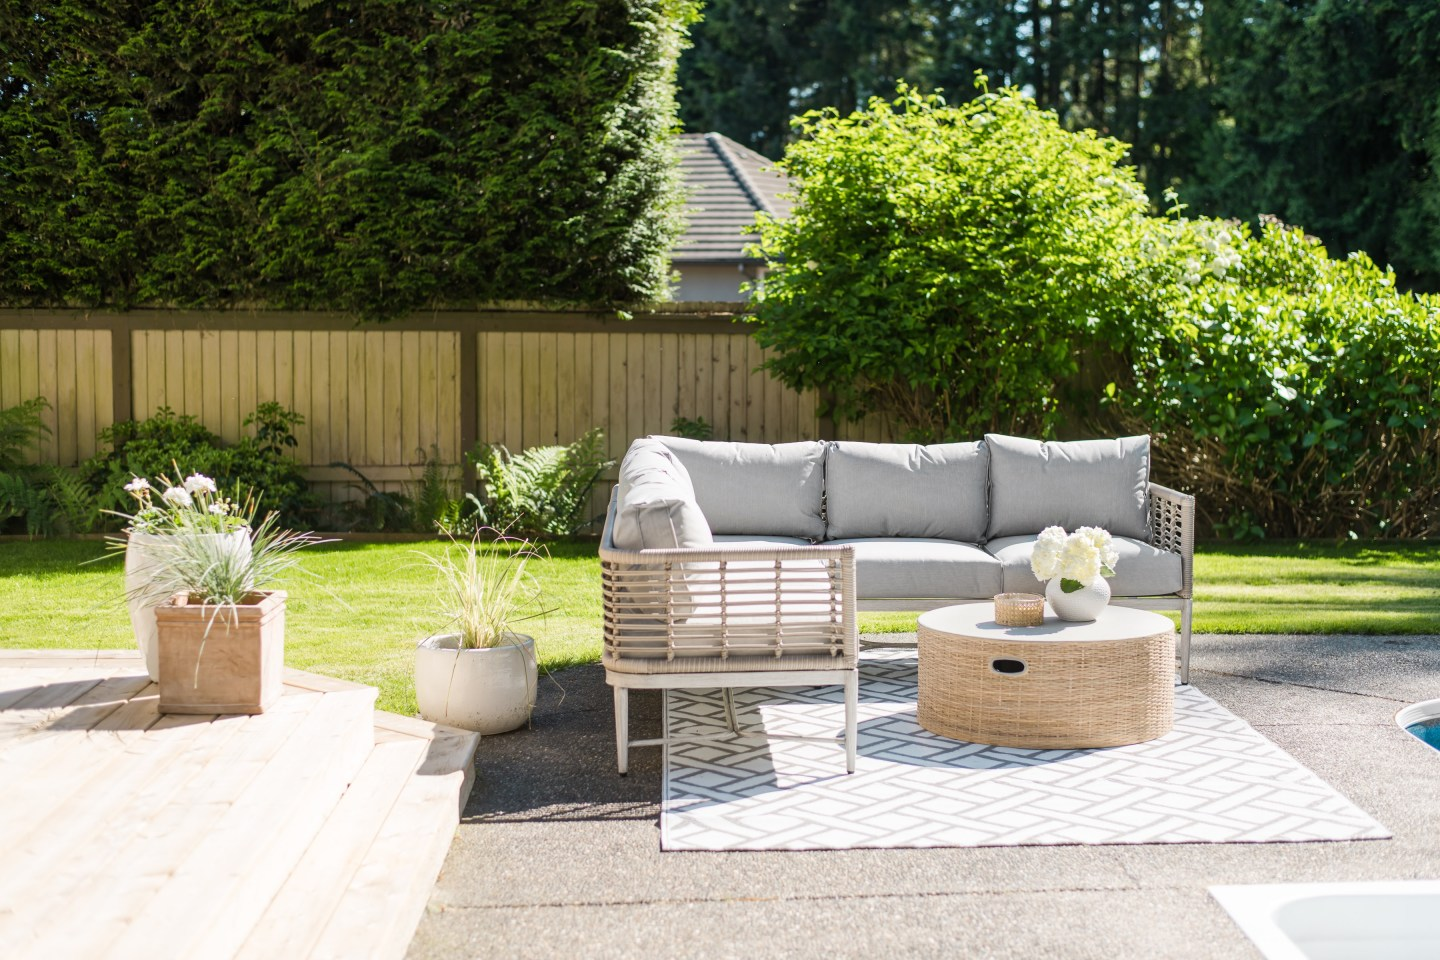 Casually elegant outdoor living space